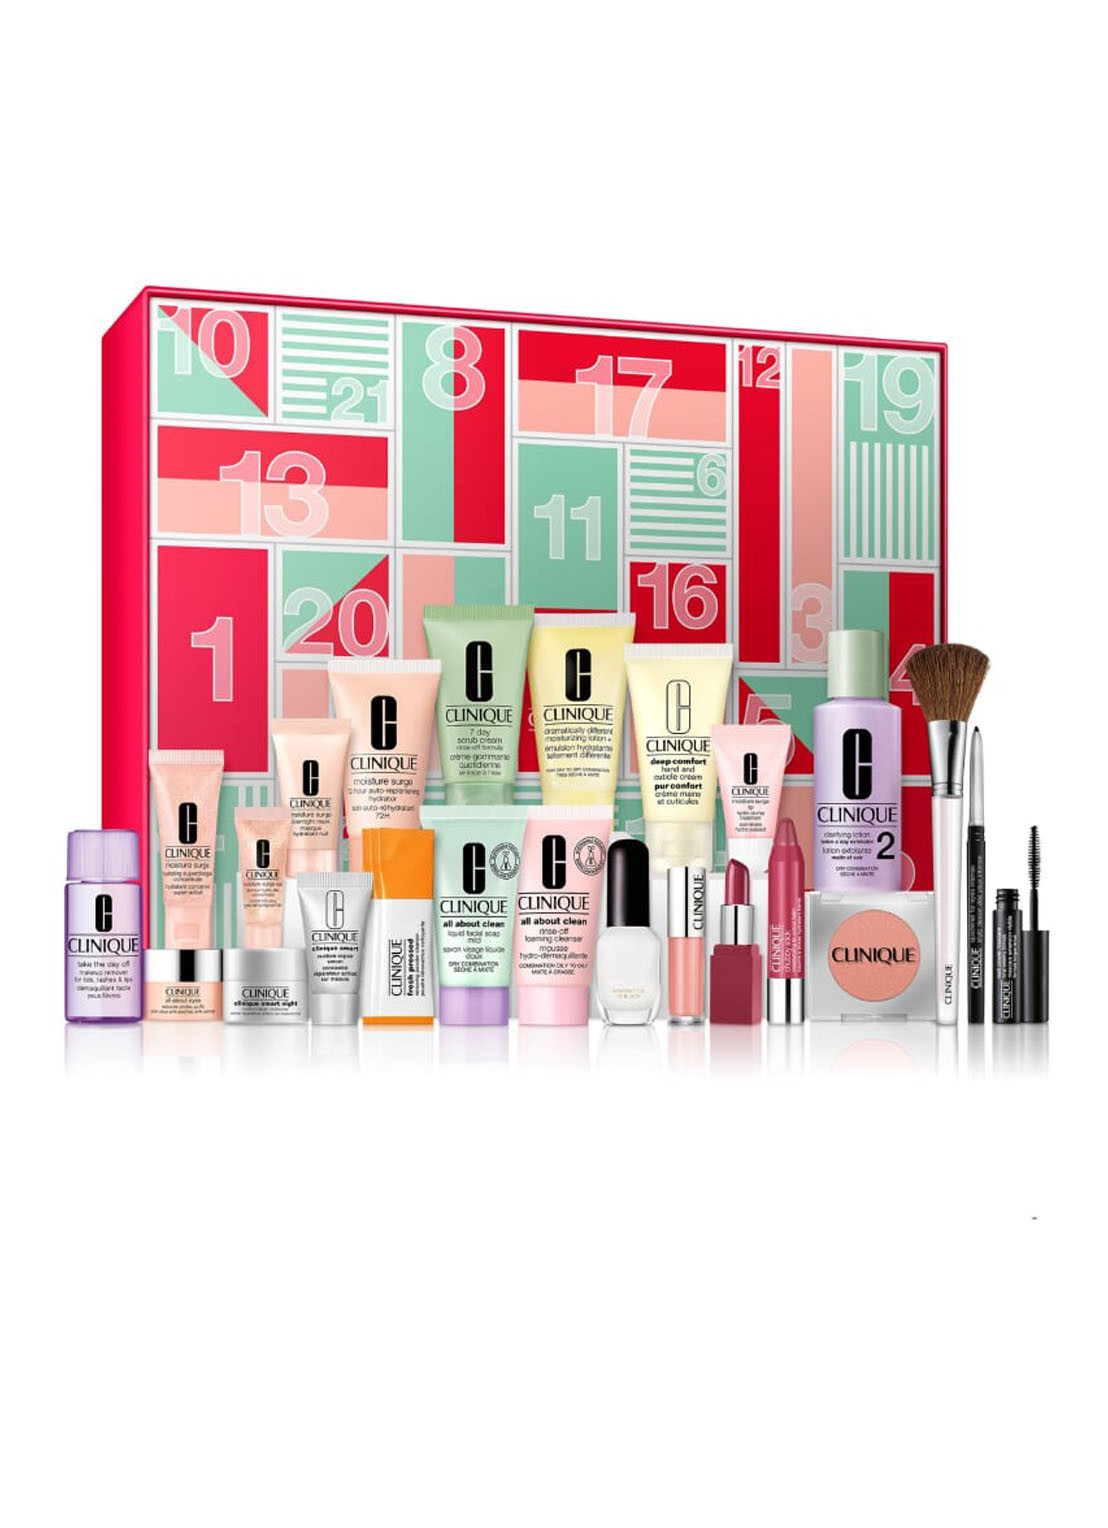 Clinique 24 Days Of Clinique – Limited Edition Adventskalender